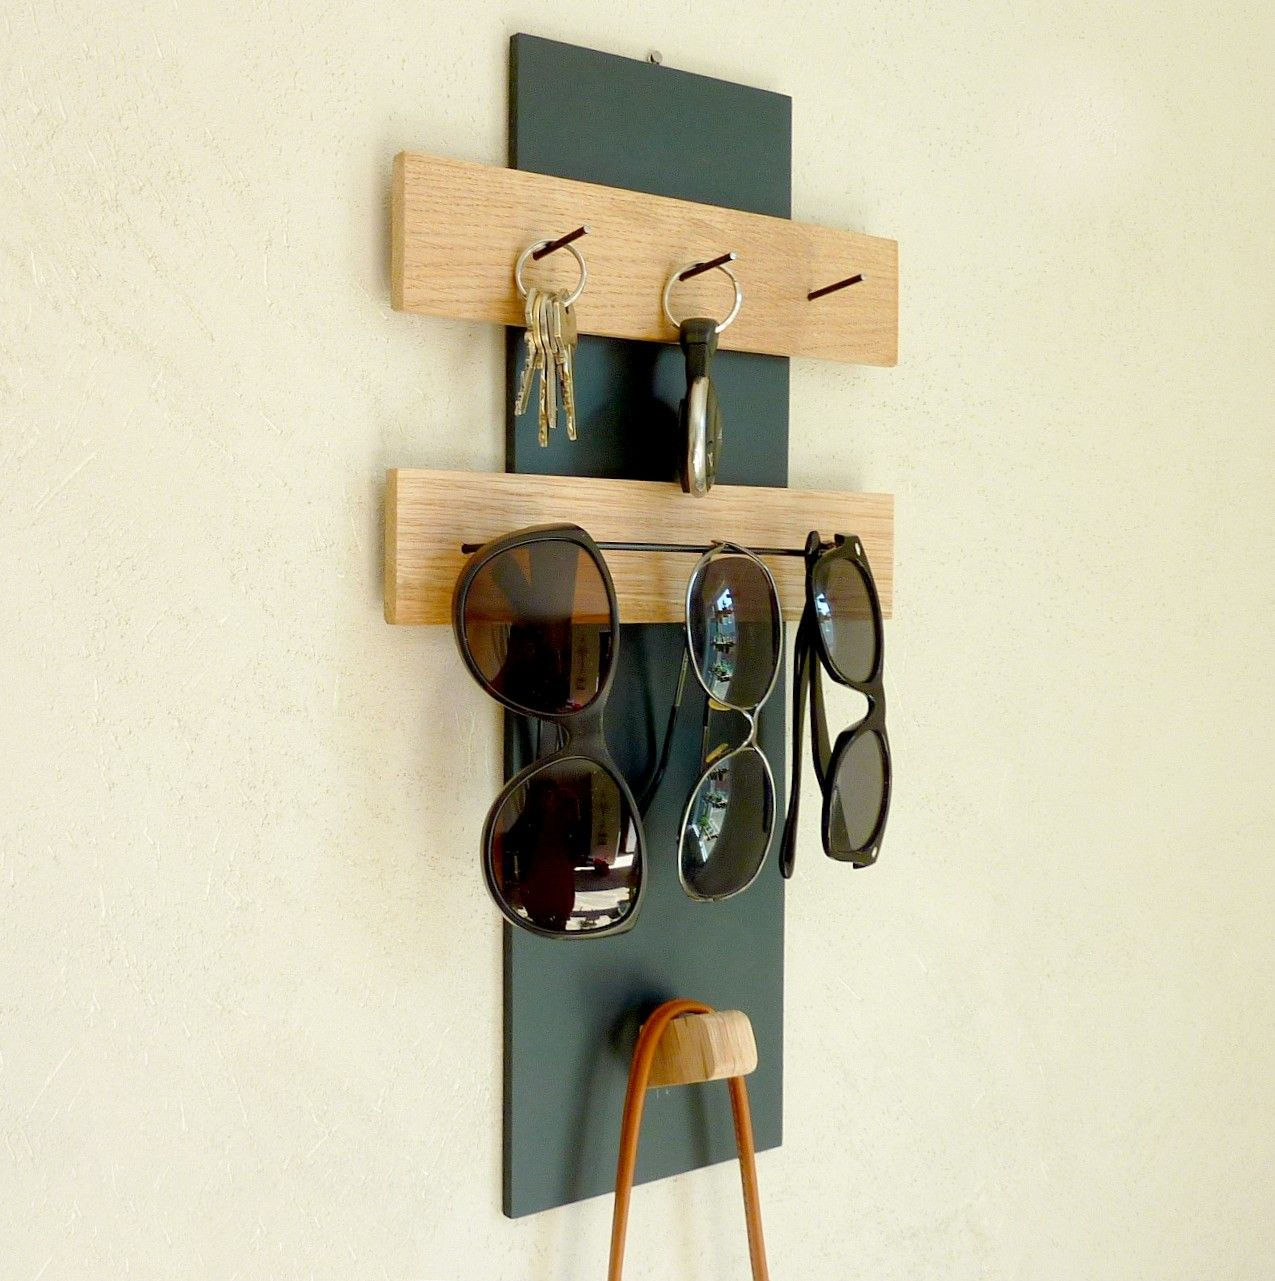 Organiseur D Entree Mural Support Cles Lunettes In 2021 Support Mural Home Decor Entry Organization